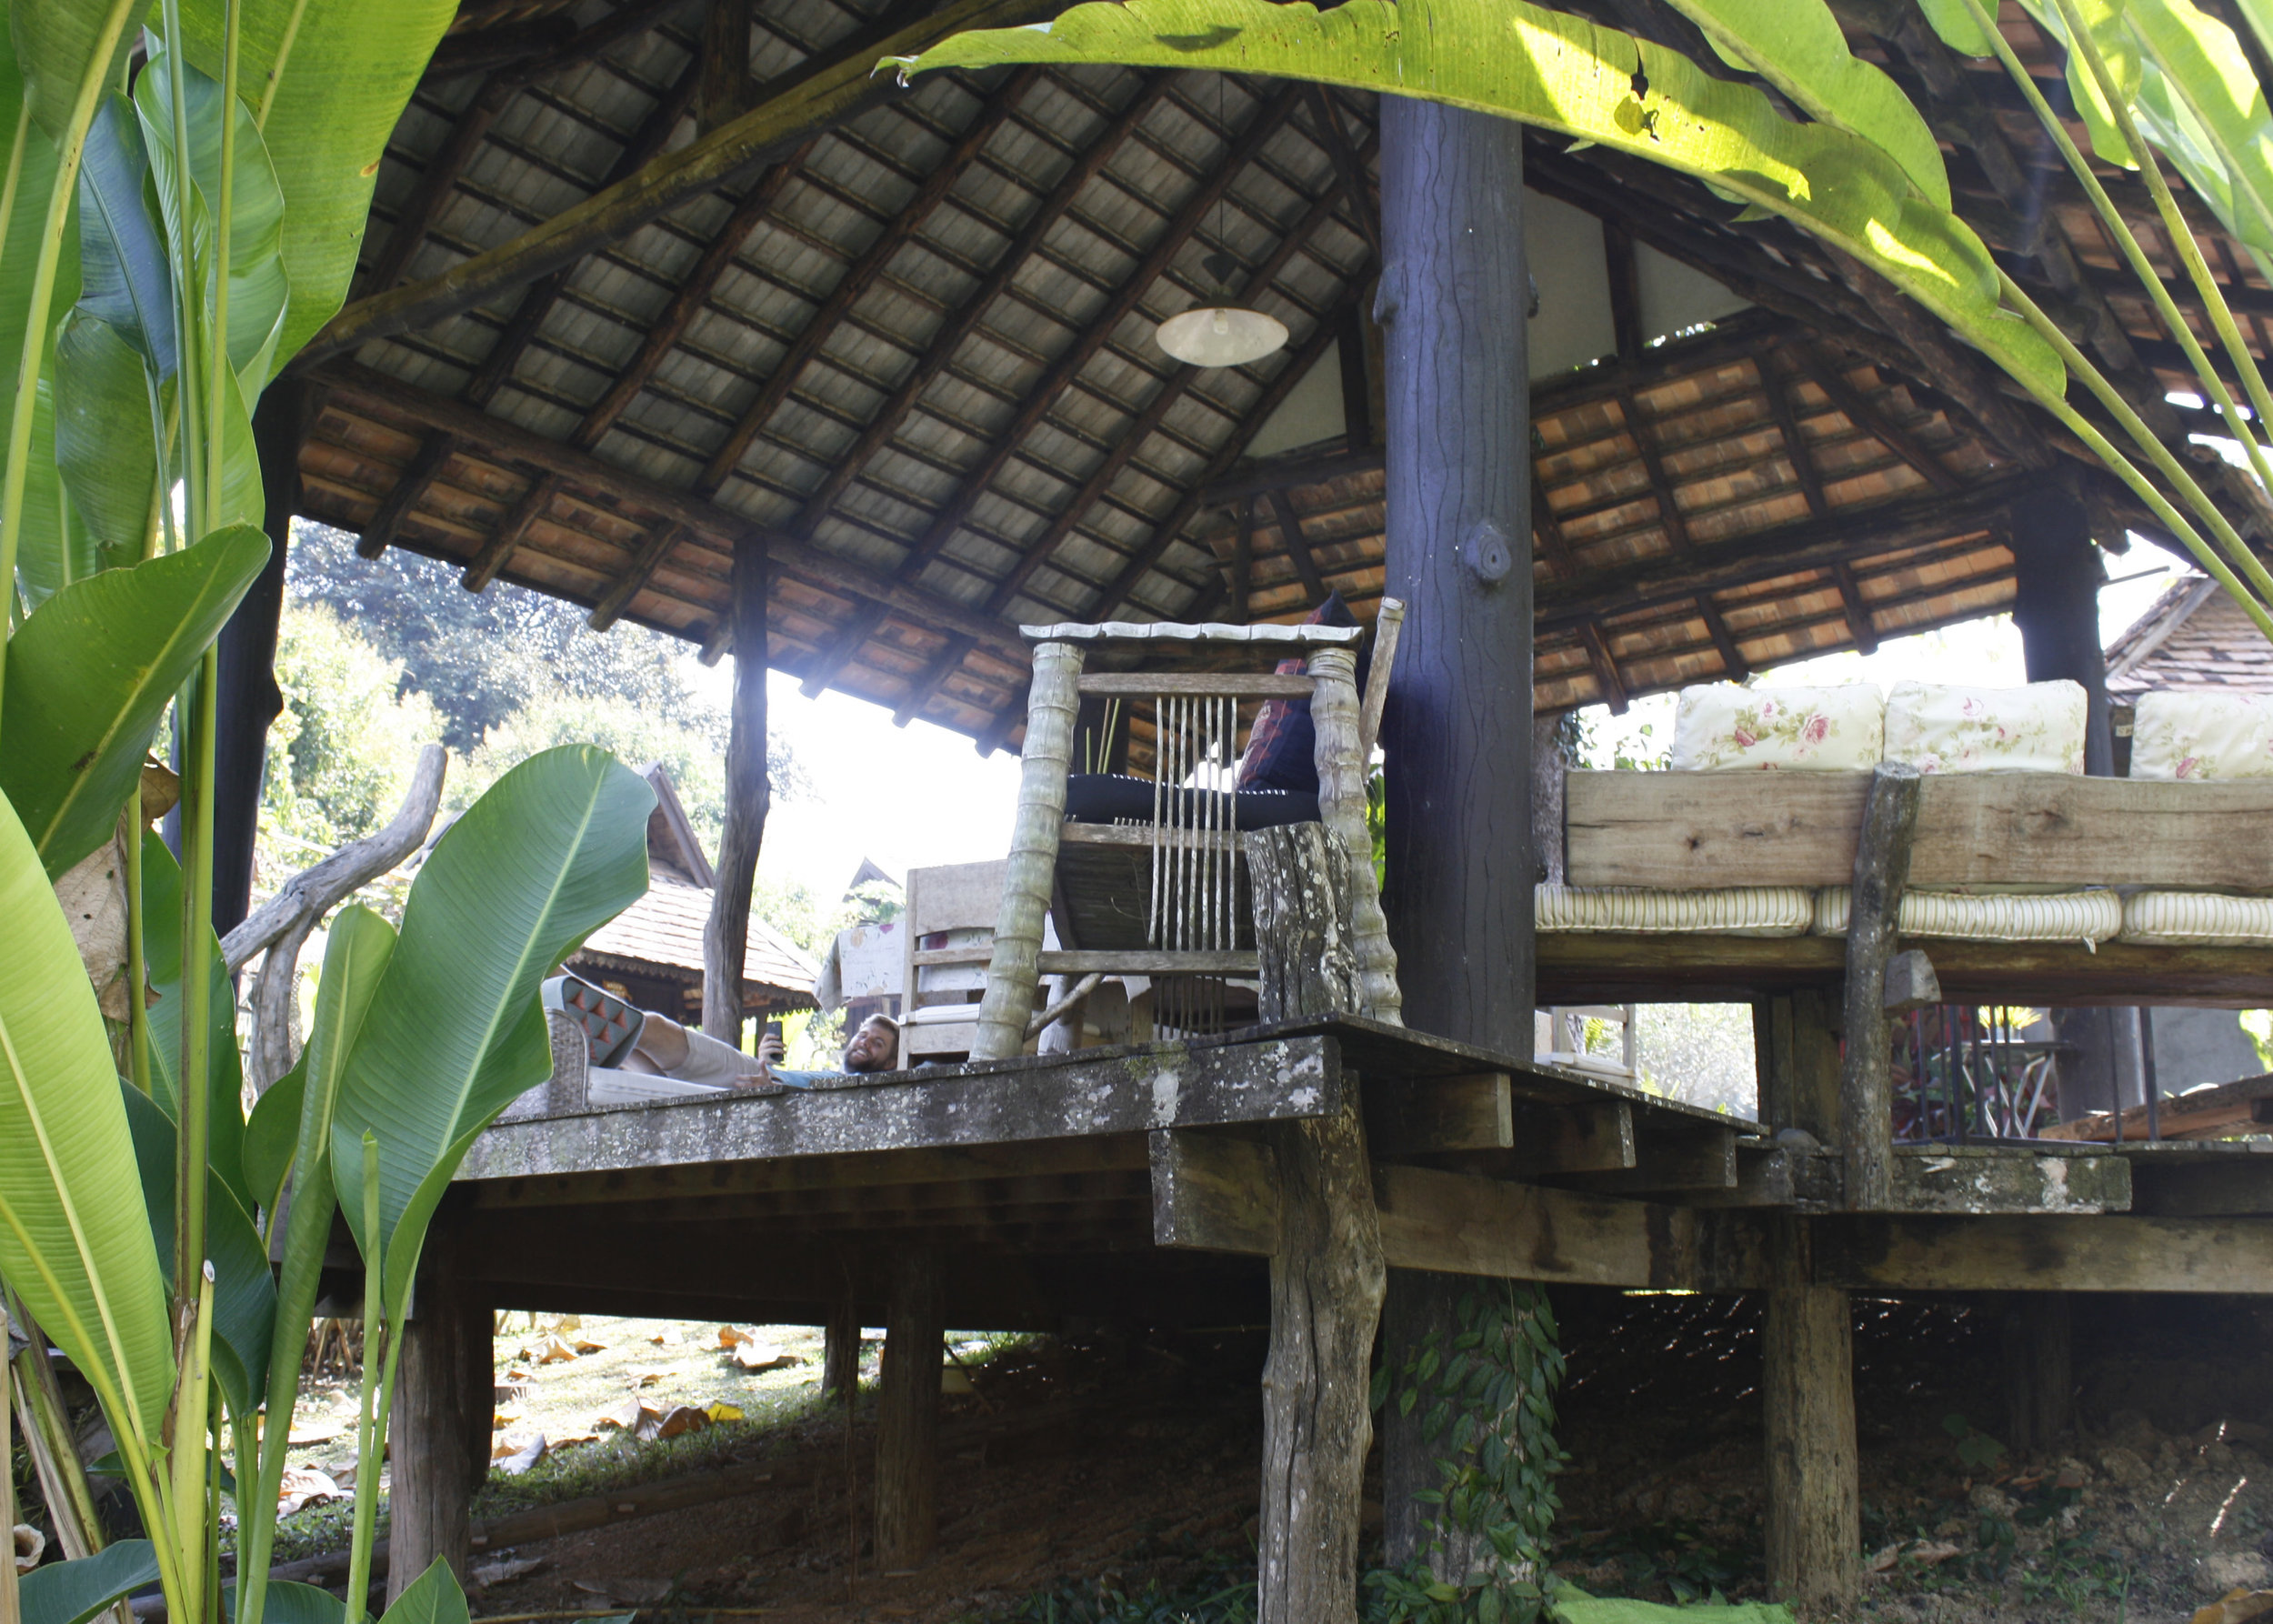 Our peaceful guesthouse on the outskirts of Chiang Mai